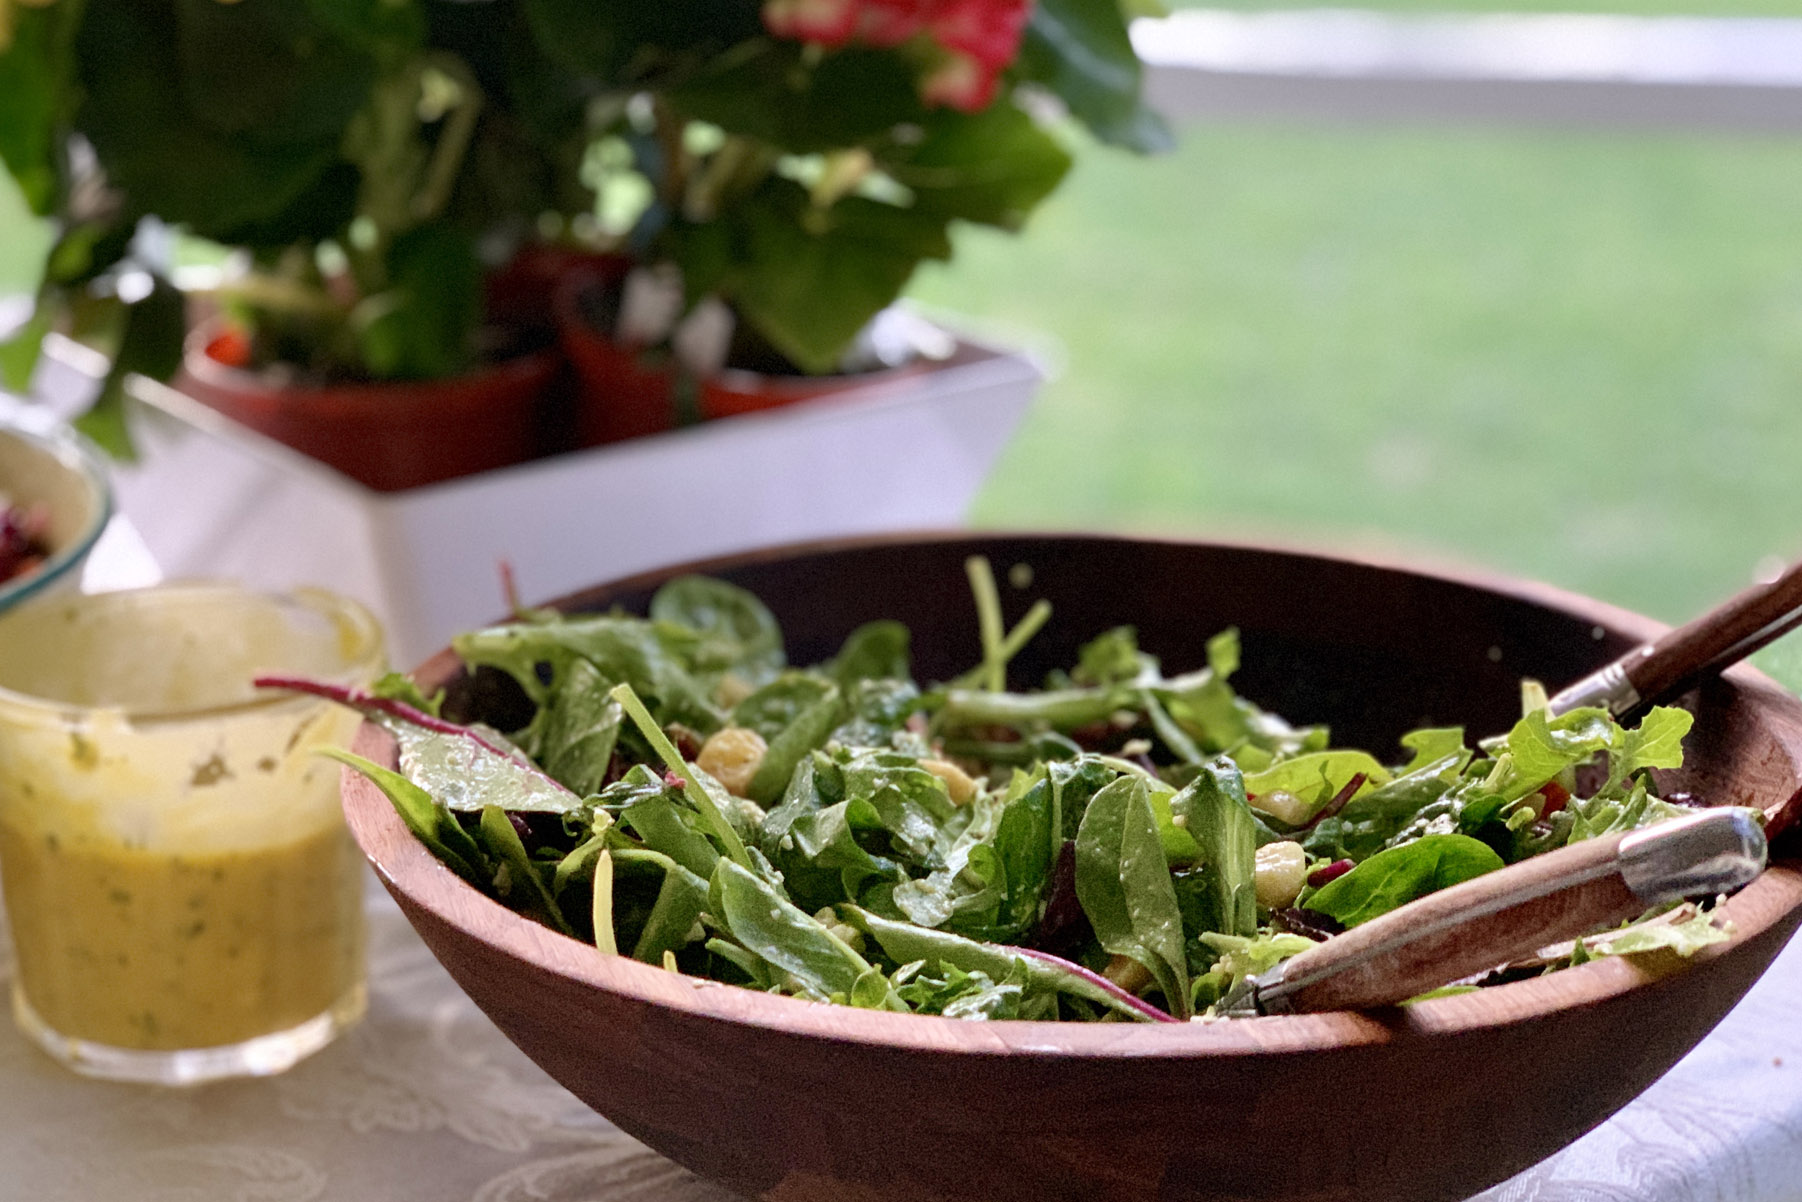 Tropical Green Salad with Mango Dressing